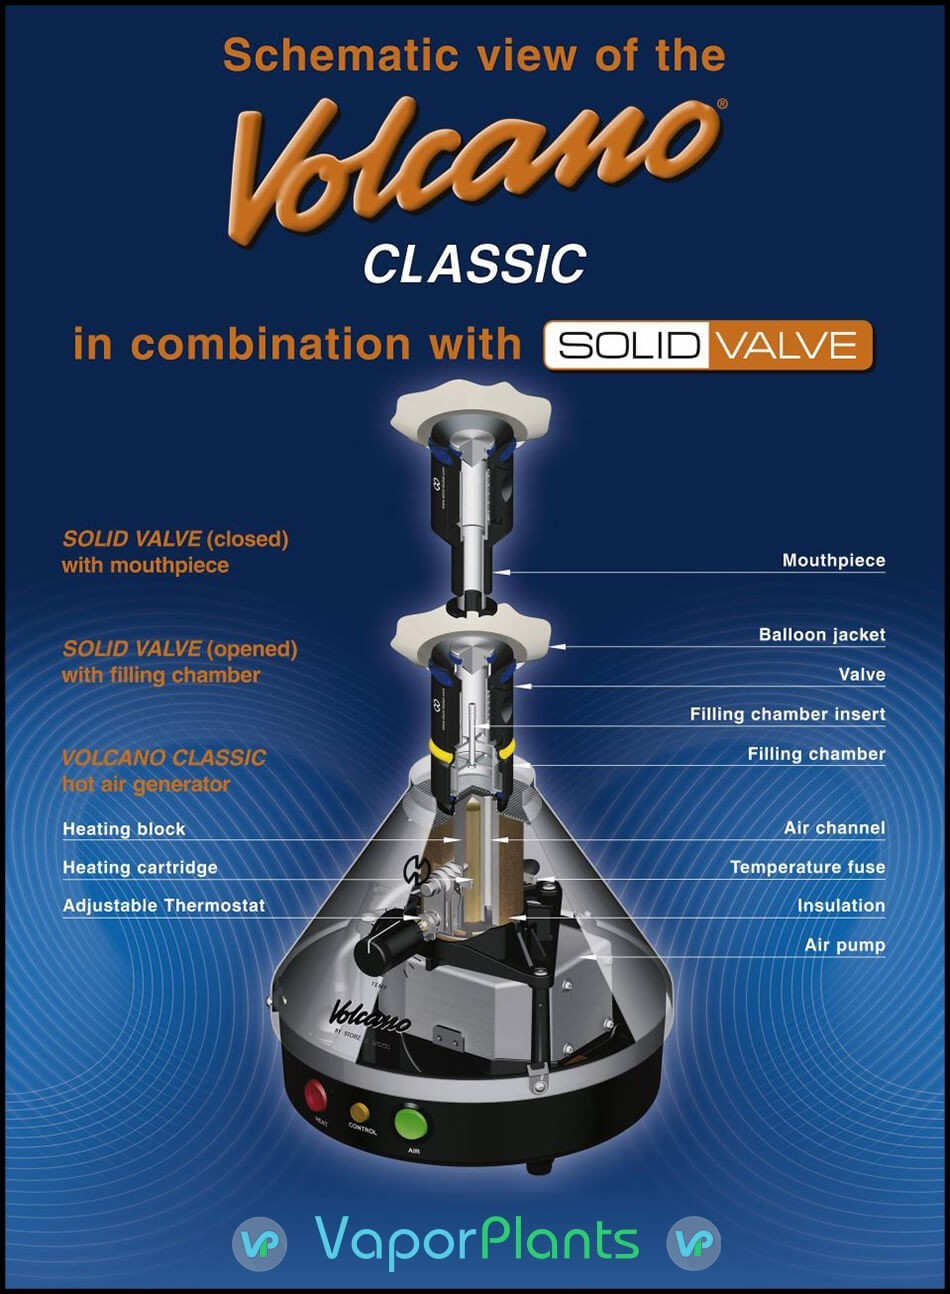 Volcano Vaporizer Classic for Dry Herbs Dissected view with solid valve